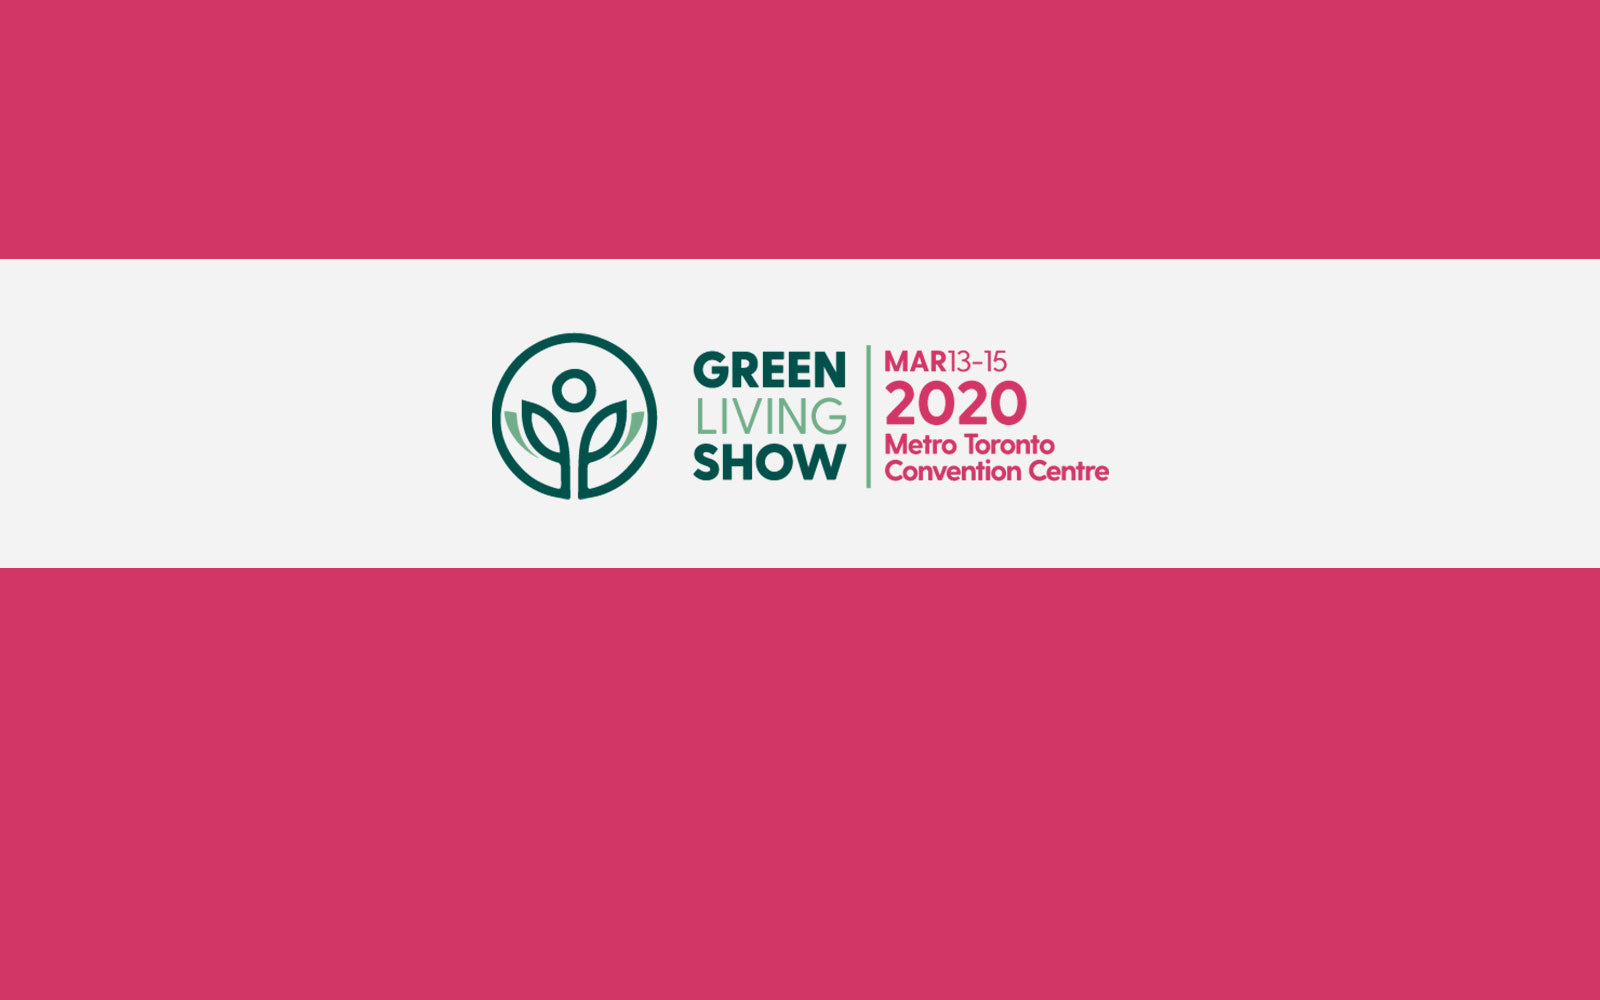 OneTab Extends Green Living Show 2020 Show Special